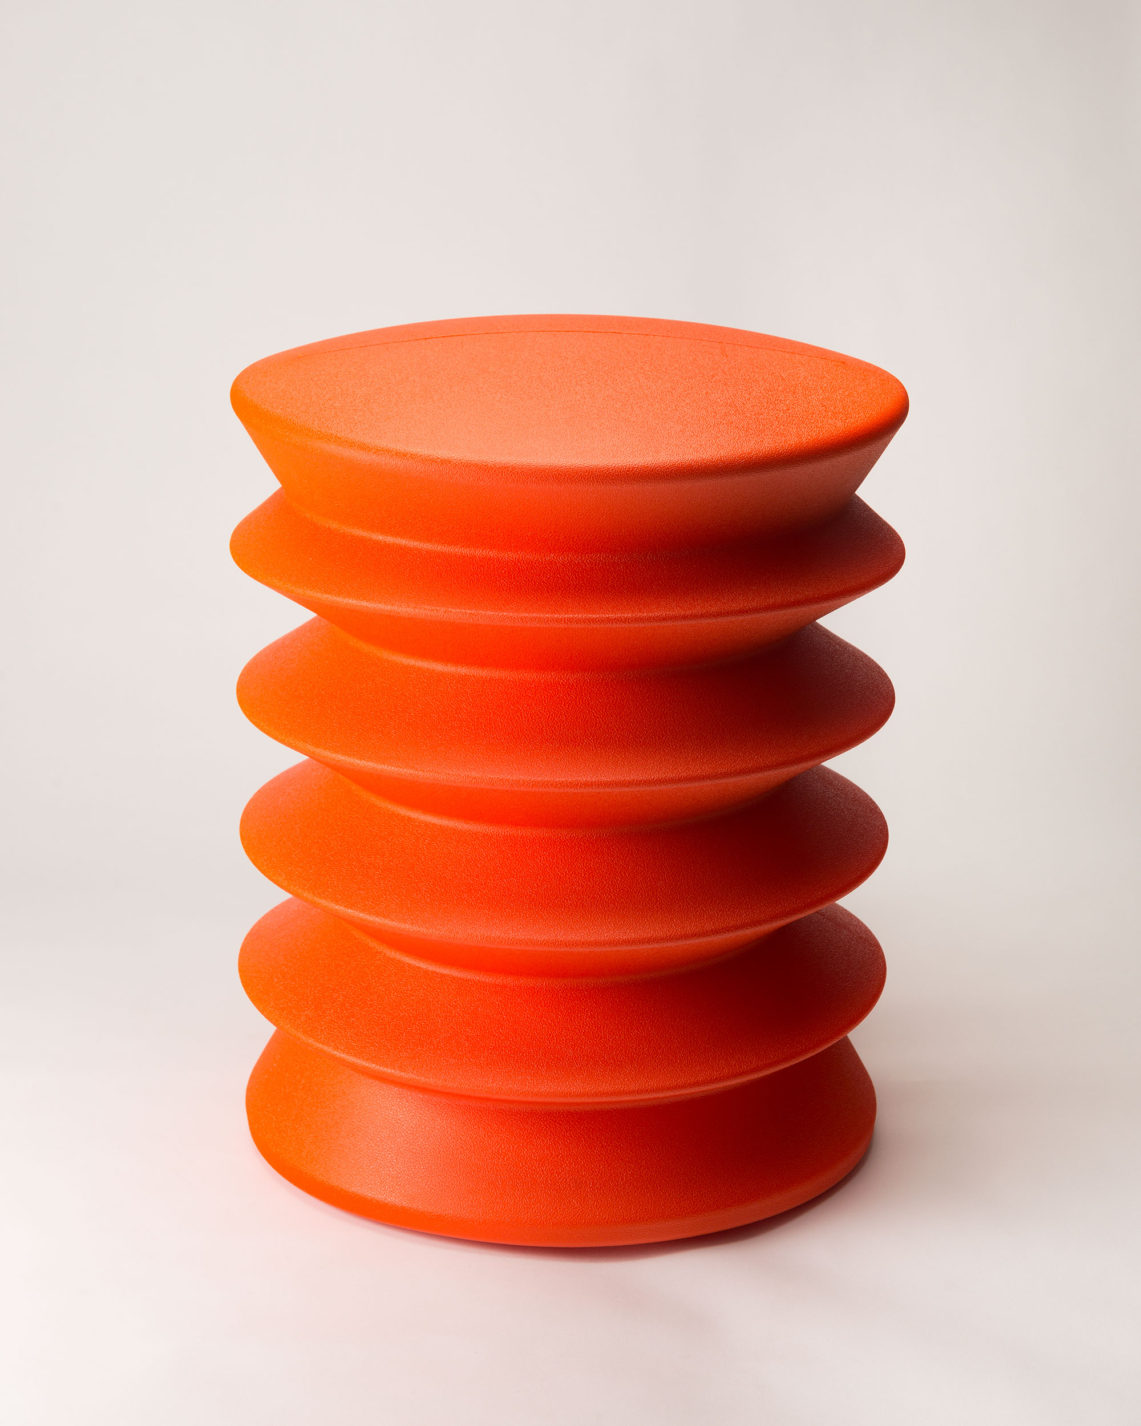 Cylindrical stool formed of a single piece of red plastic with accordion folds and a slightly rounded top.